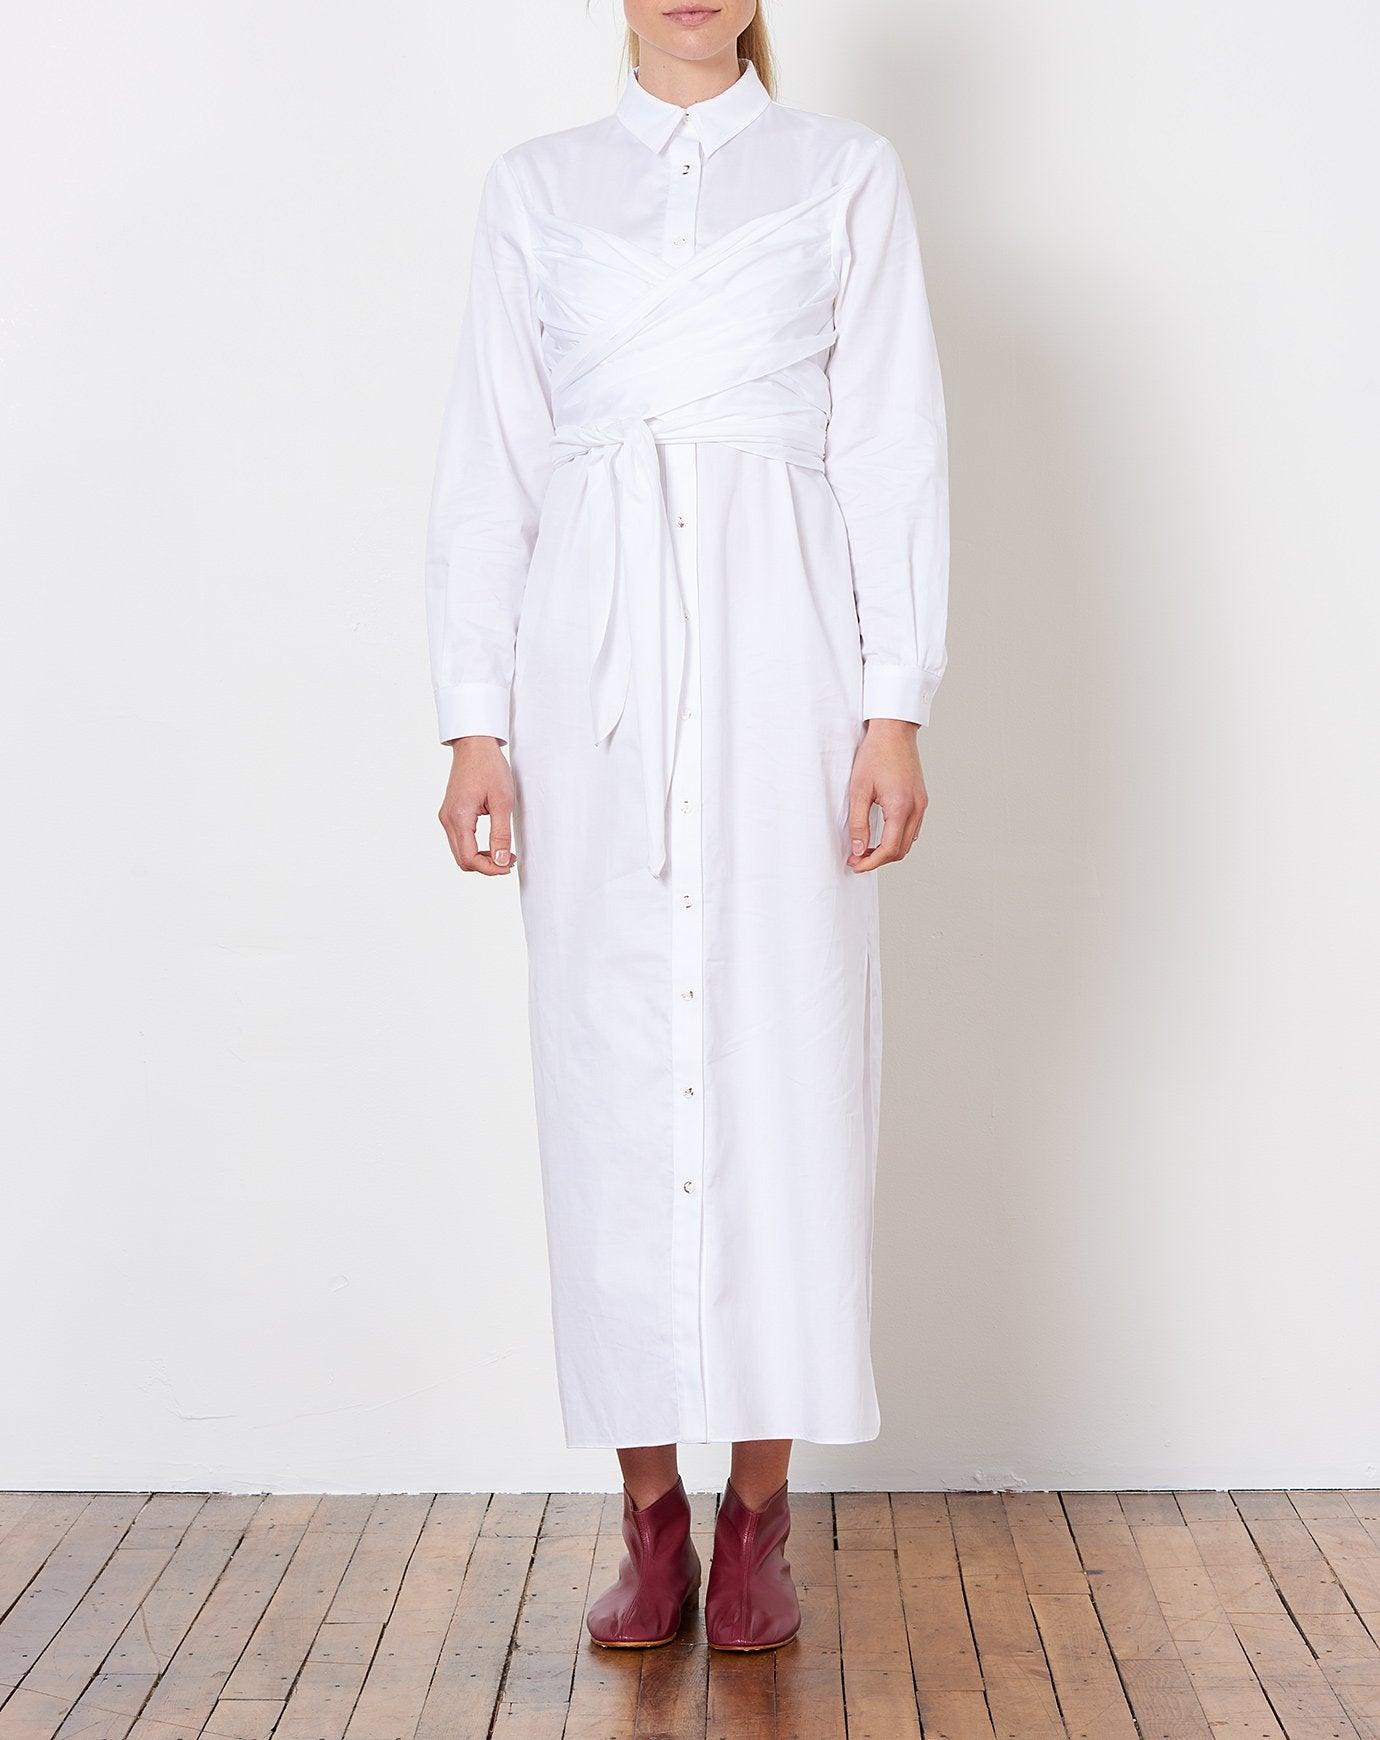 Lillian Shirt Dress In White Mara Hoffman Covet Lou